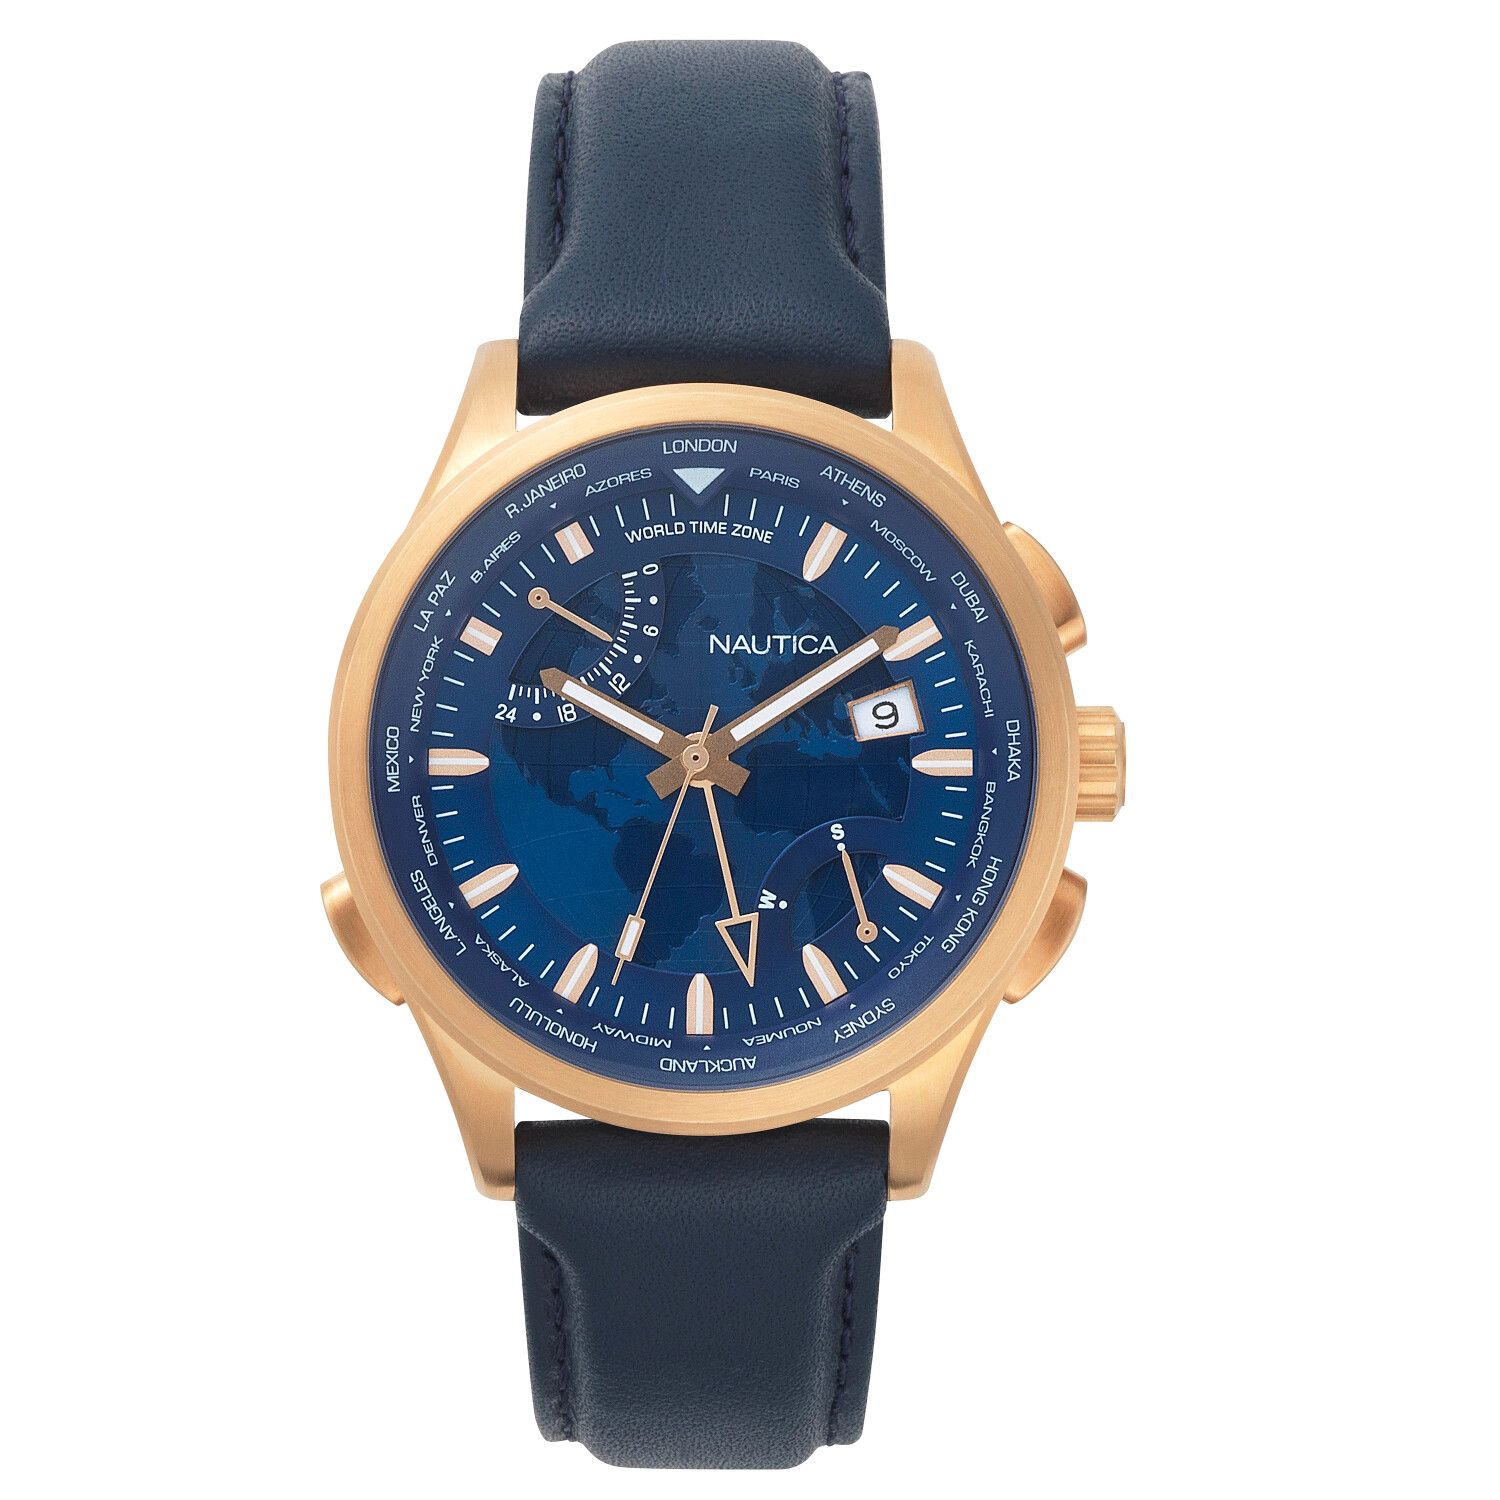 Nautica Watch NAPSHG002 Shanghai, Analog, Water Resistant, Date Display, 24 Hour Indicator, World Time Zone, Blue Leather Band, Blue